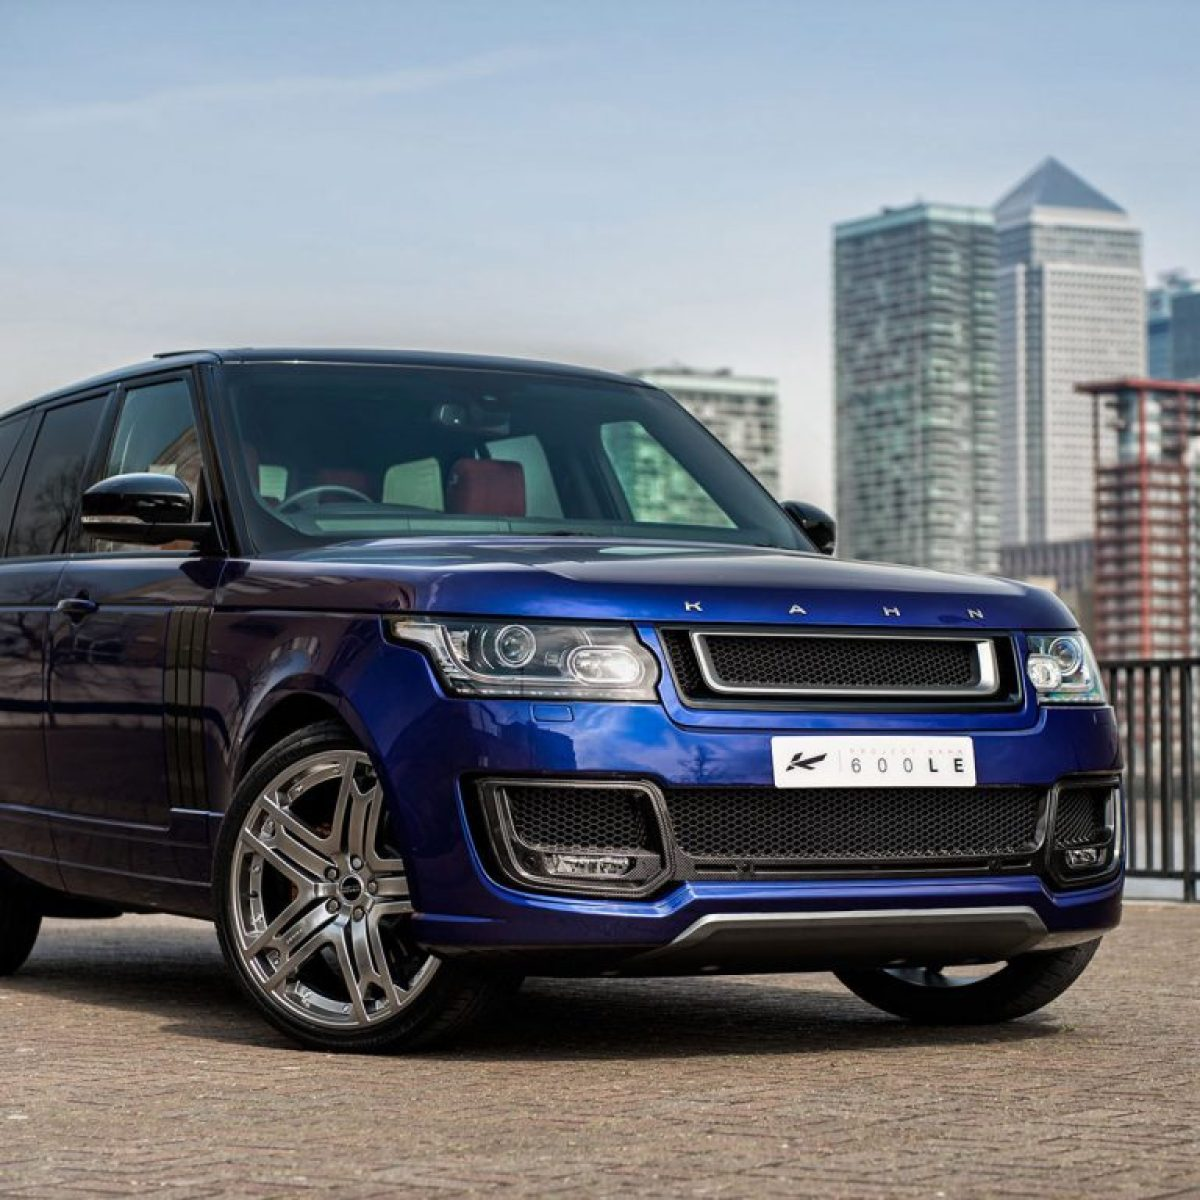 2014 Project Kahn Range Rover 600 Le Bali Blue Luxury Edition